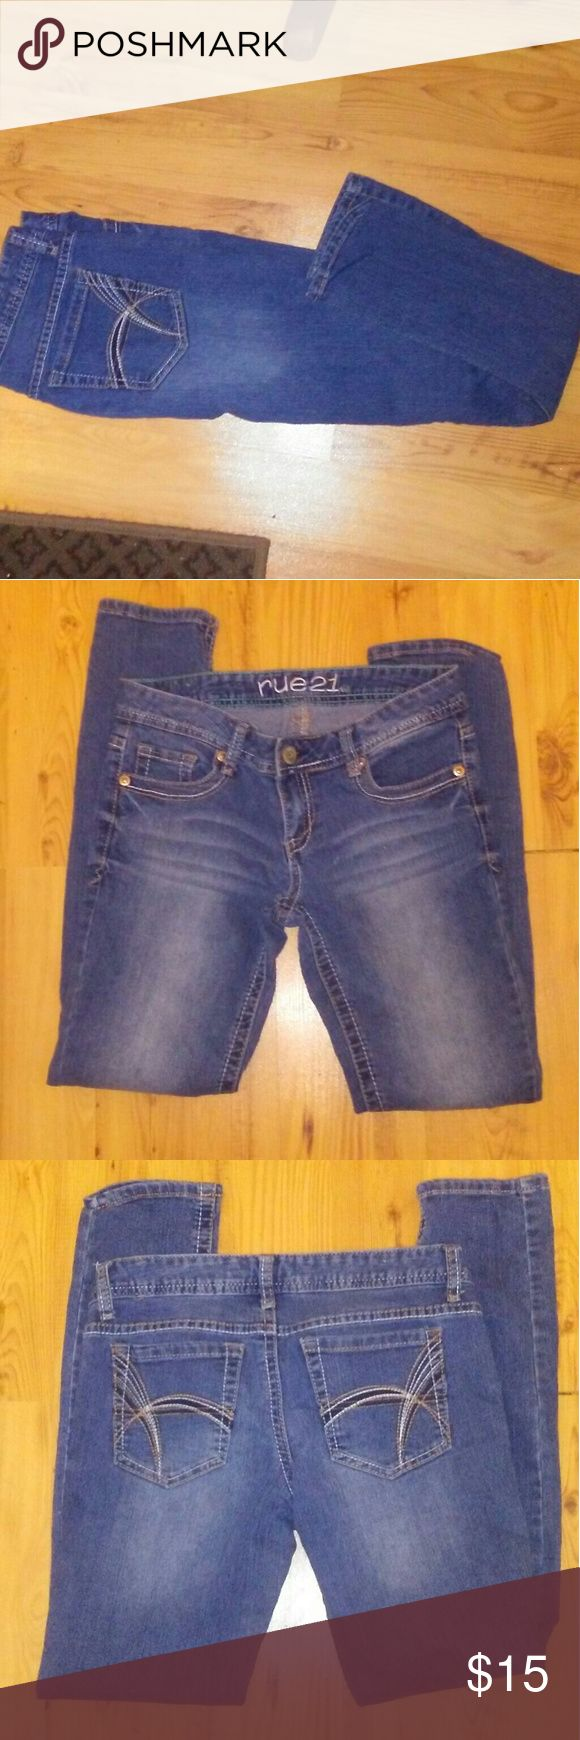 RUE 21 low rise skinny jeans Gently used Rue 21 jeans. Rise 7 inches waist 30 inches inseam 28 inches leg opening 11 inches Rue21 Jeans Skinny